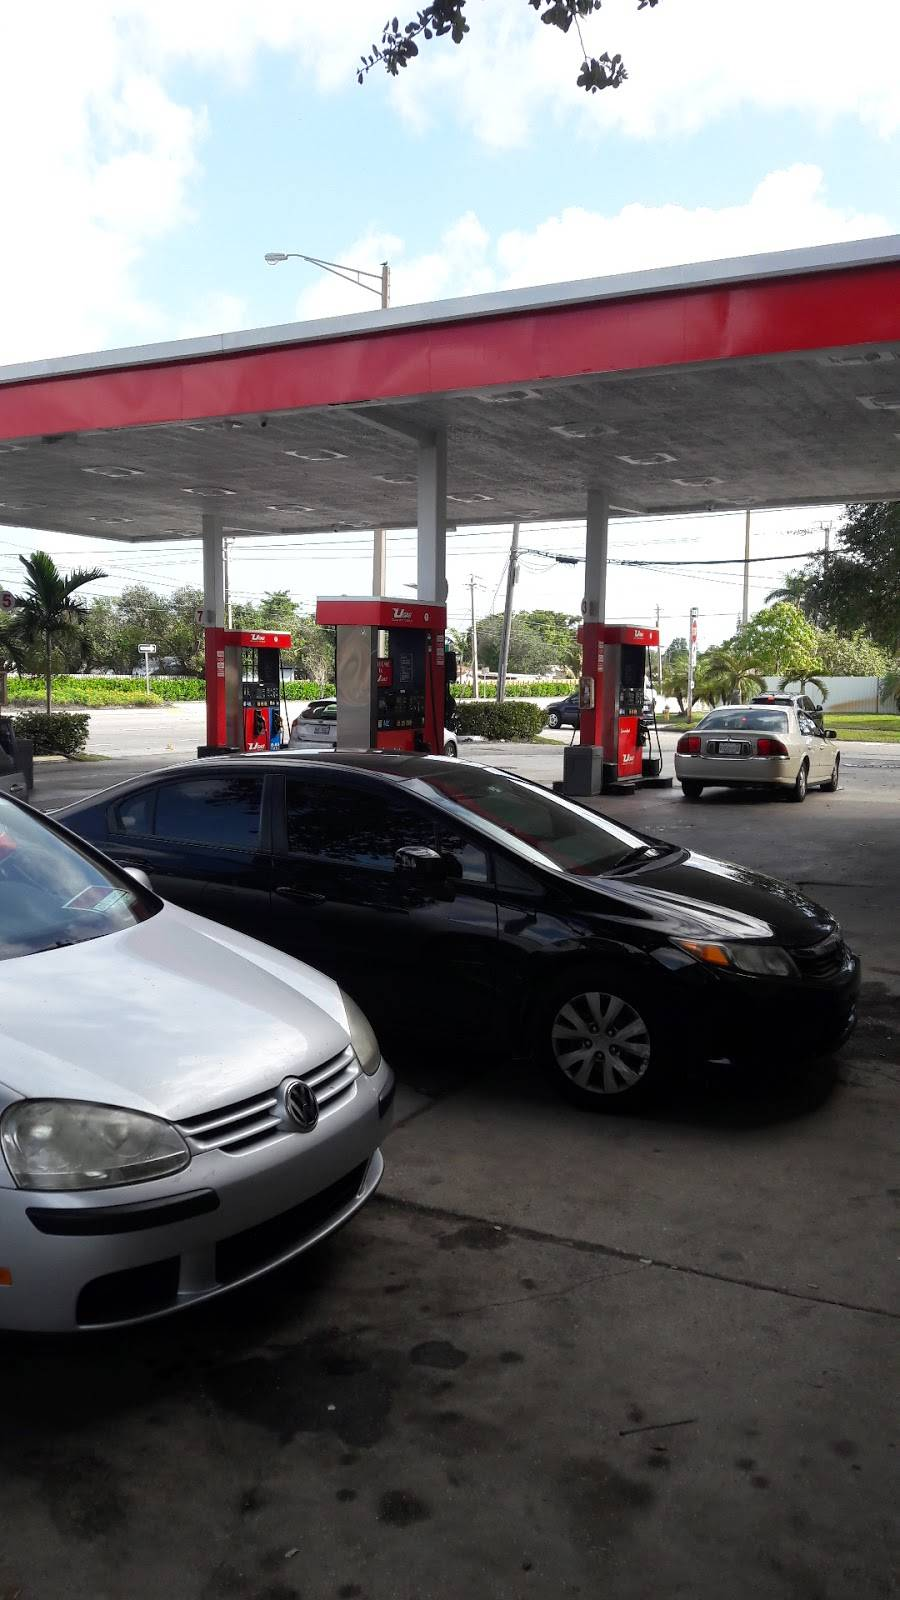 PINES U GAS - gas station  | Photo 2 of 2 | Address: 7000 Hollywood Blvd, Hollywood, FL 33024, USA | Phone: (954) 893-1789